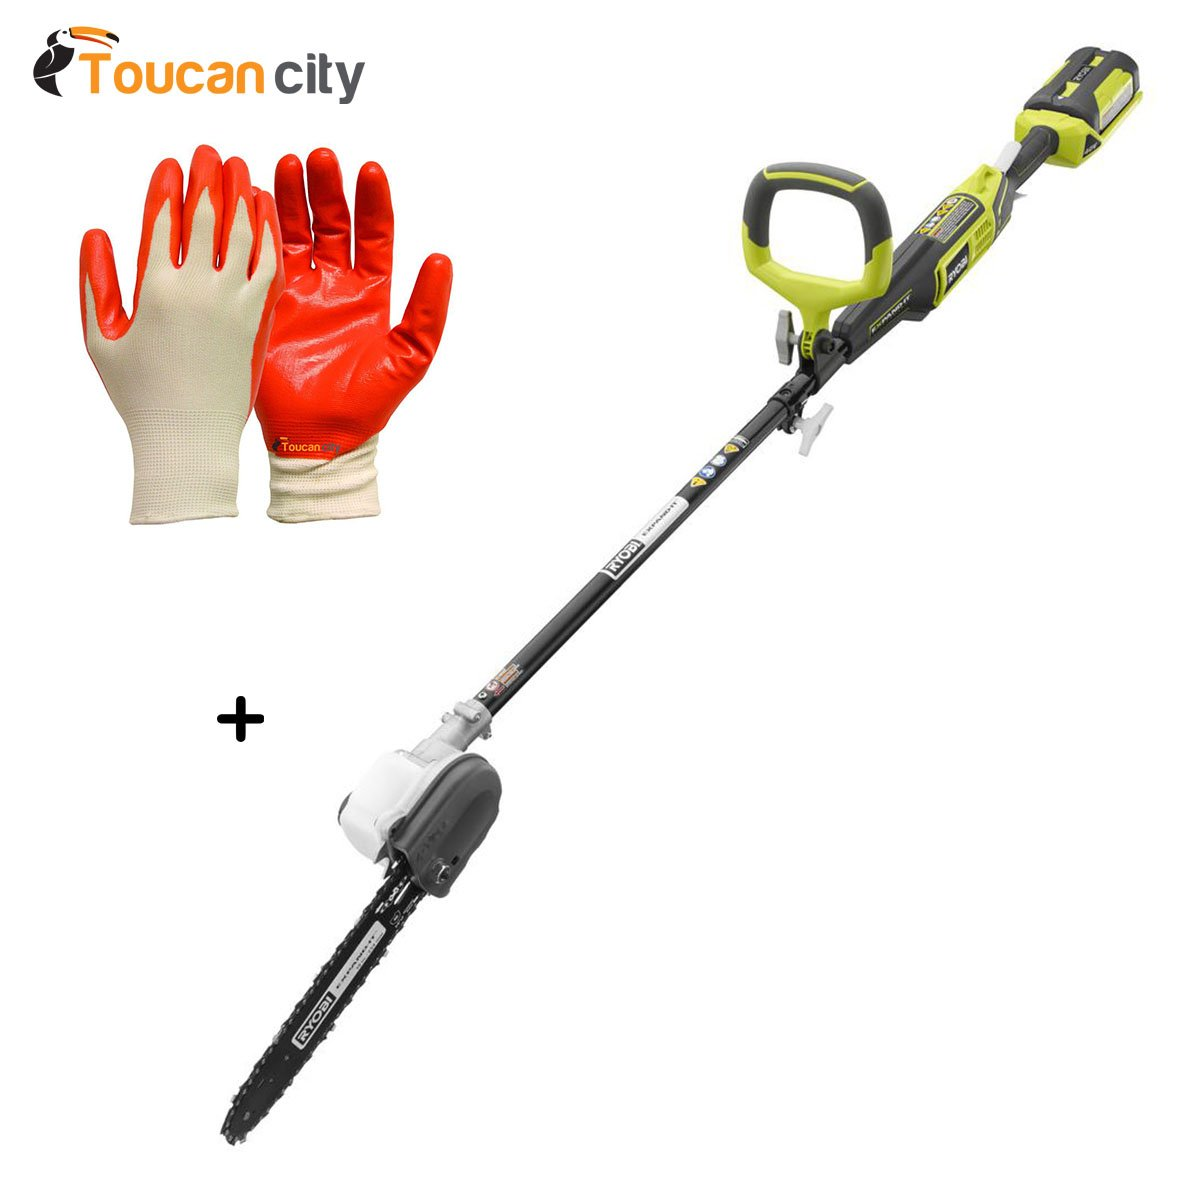 Toucan City Ryobi 10 in. 40-Volt Lithium-Ion Cordless Pole Saw - 2.6 Ah Battery and Charger Included RY40561 and Nitrile Dip Gloves(5-Pack)